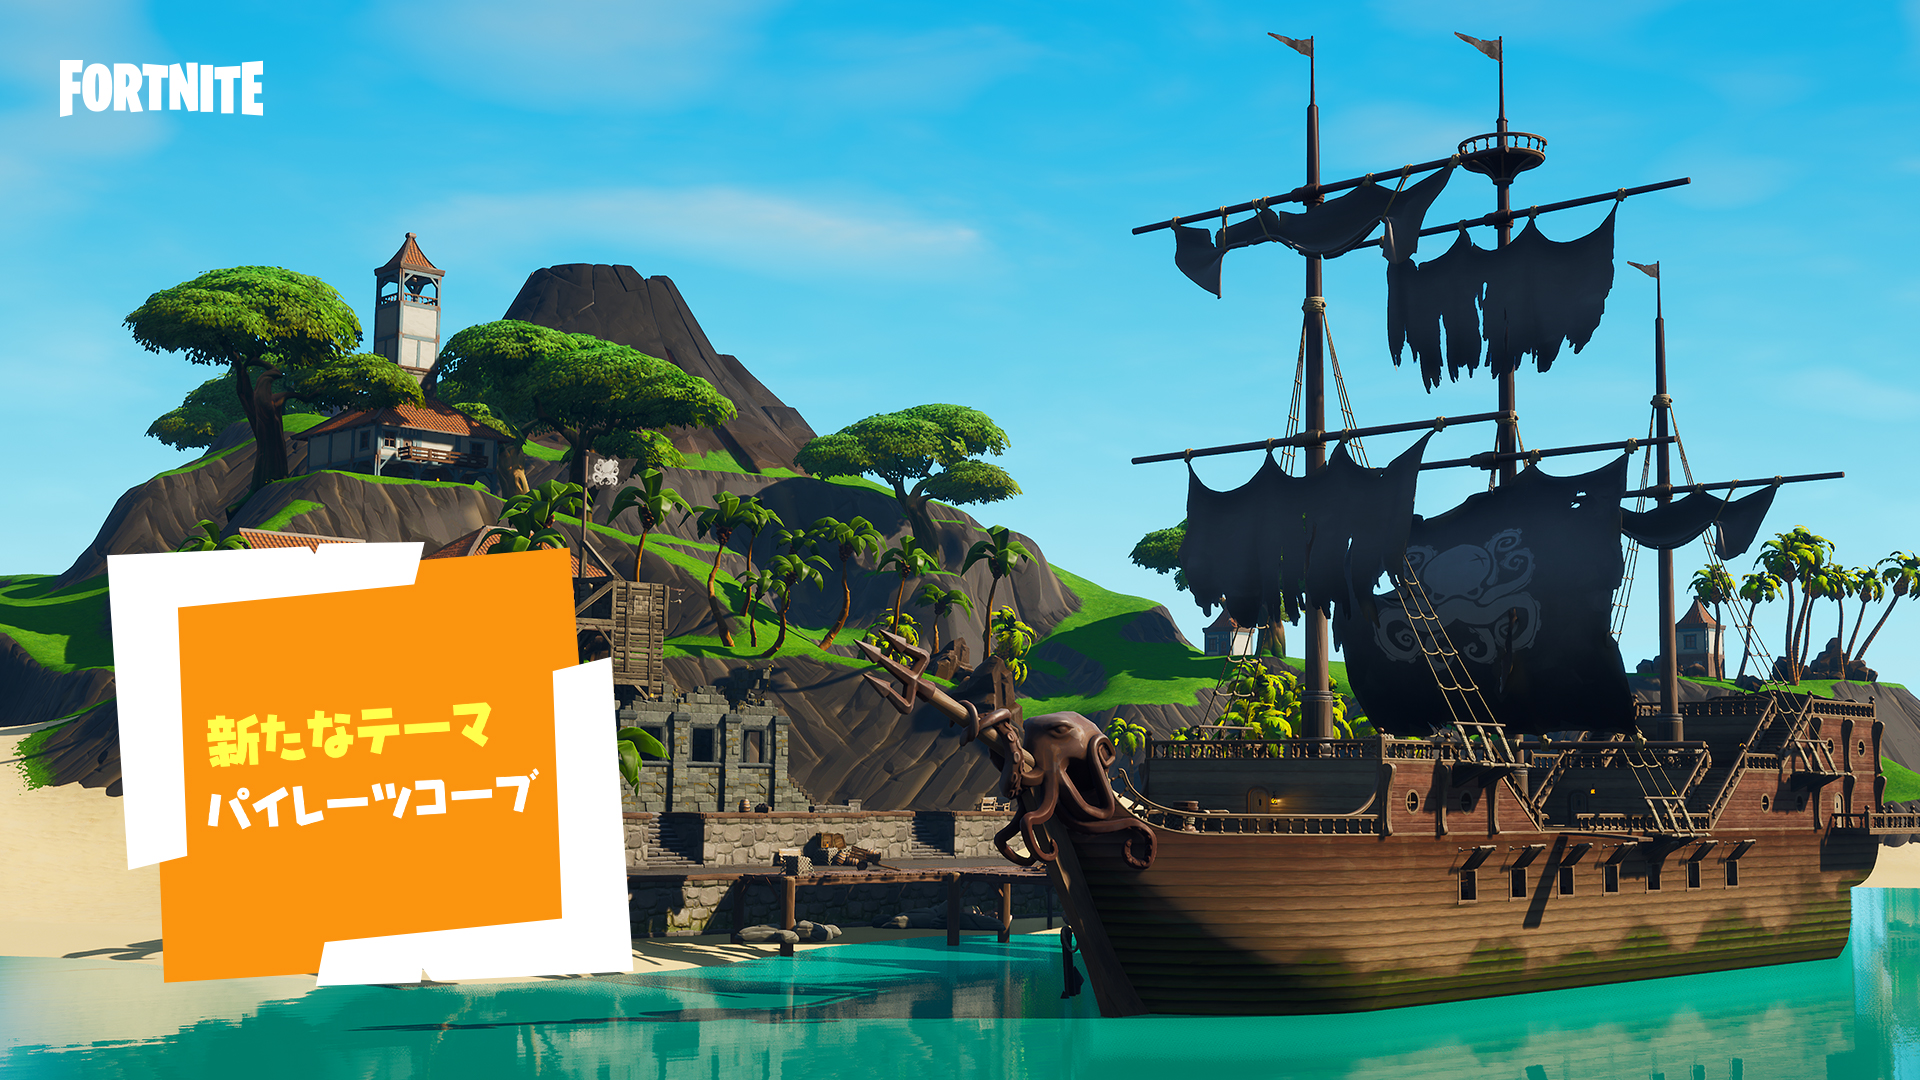 JP_08CM_Theme_PirateCove_Social.jpg